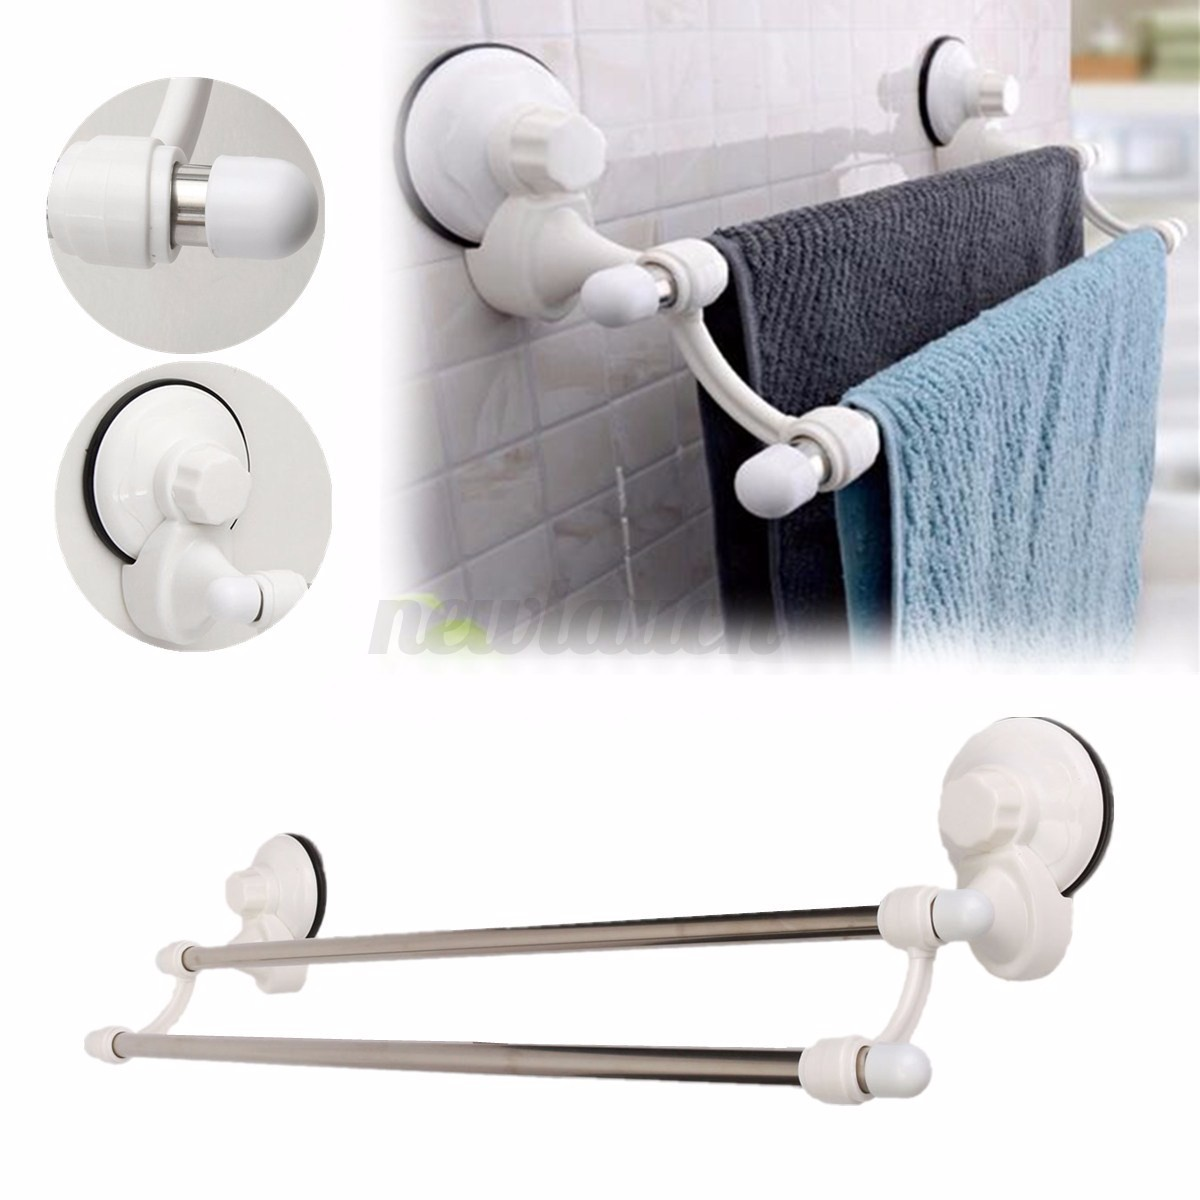 suction cup 50cm wall mounted bathroom towel rail holder storage racks 2 bars ebay. Black Bedroom Furniture Sets. Home Design Ideas